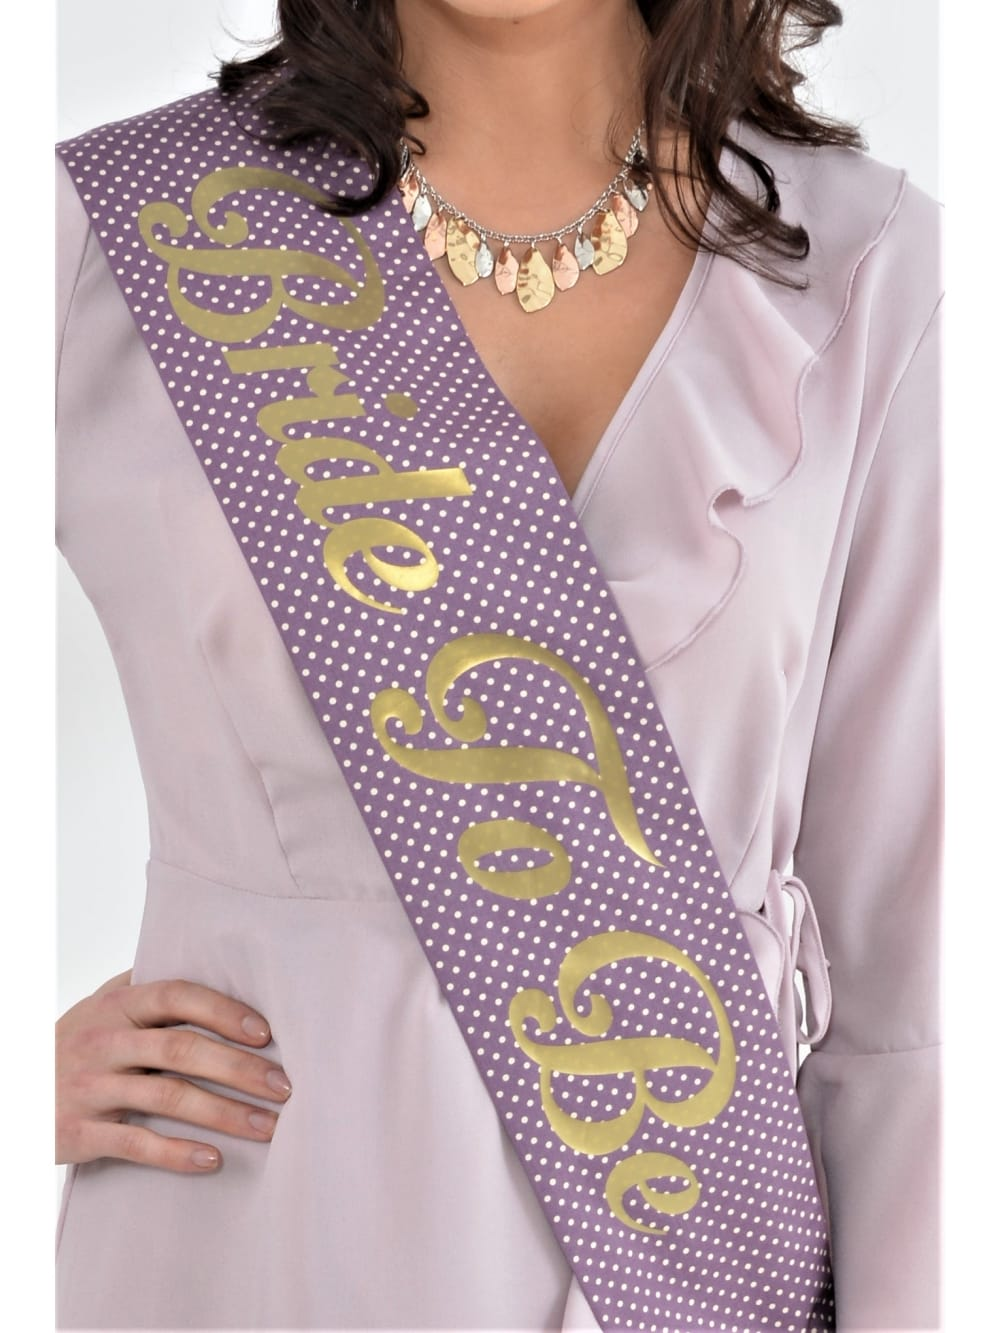 Hen Party Superstore Luxury Vintage Polka Dot Personalised Sash ... df42afb15